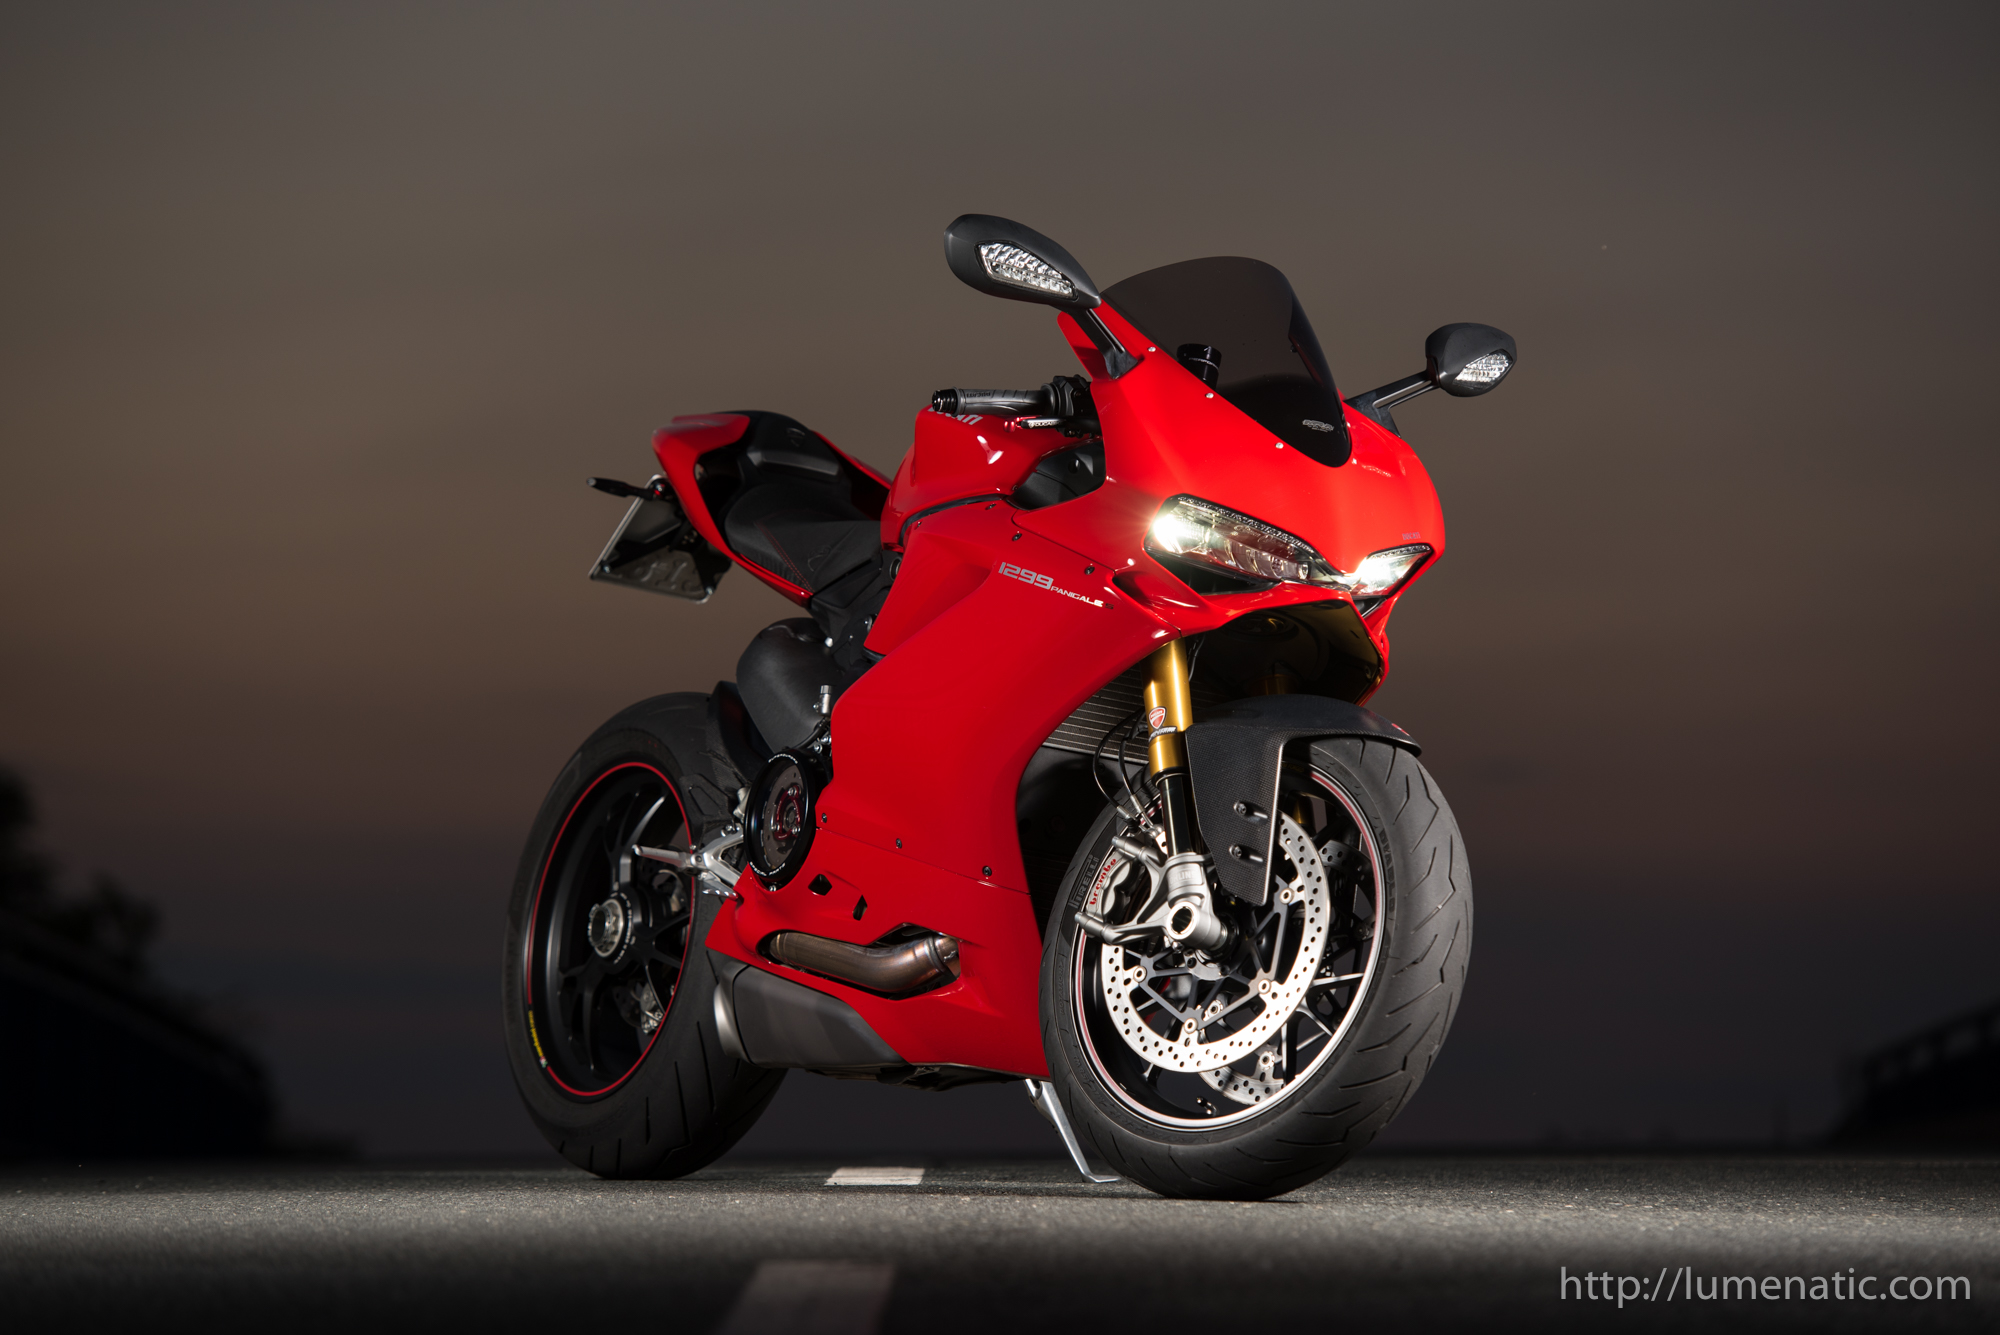 Ducati Panigale 1299, Part 2/2